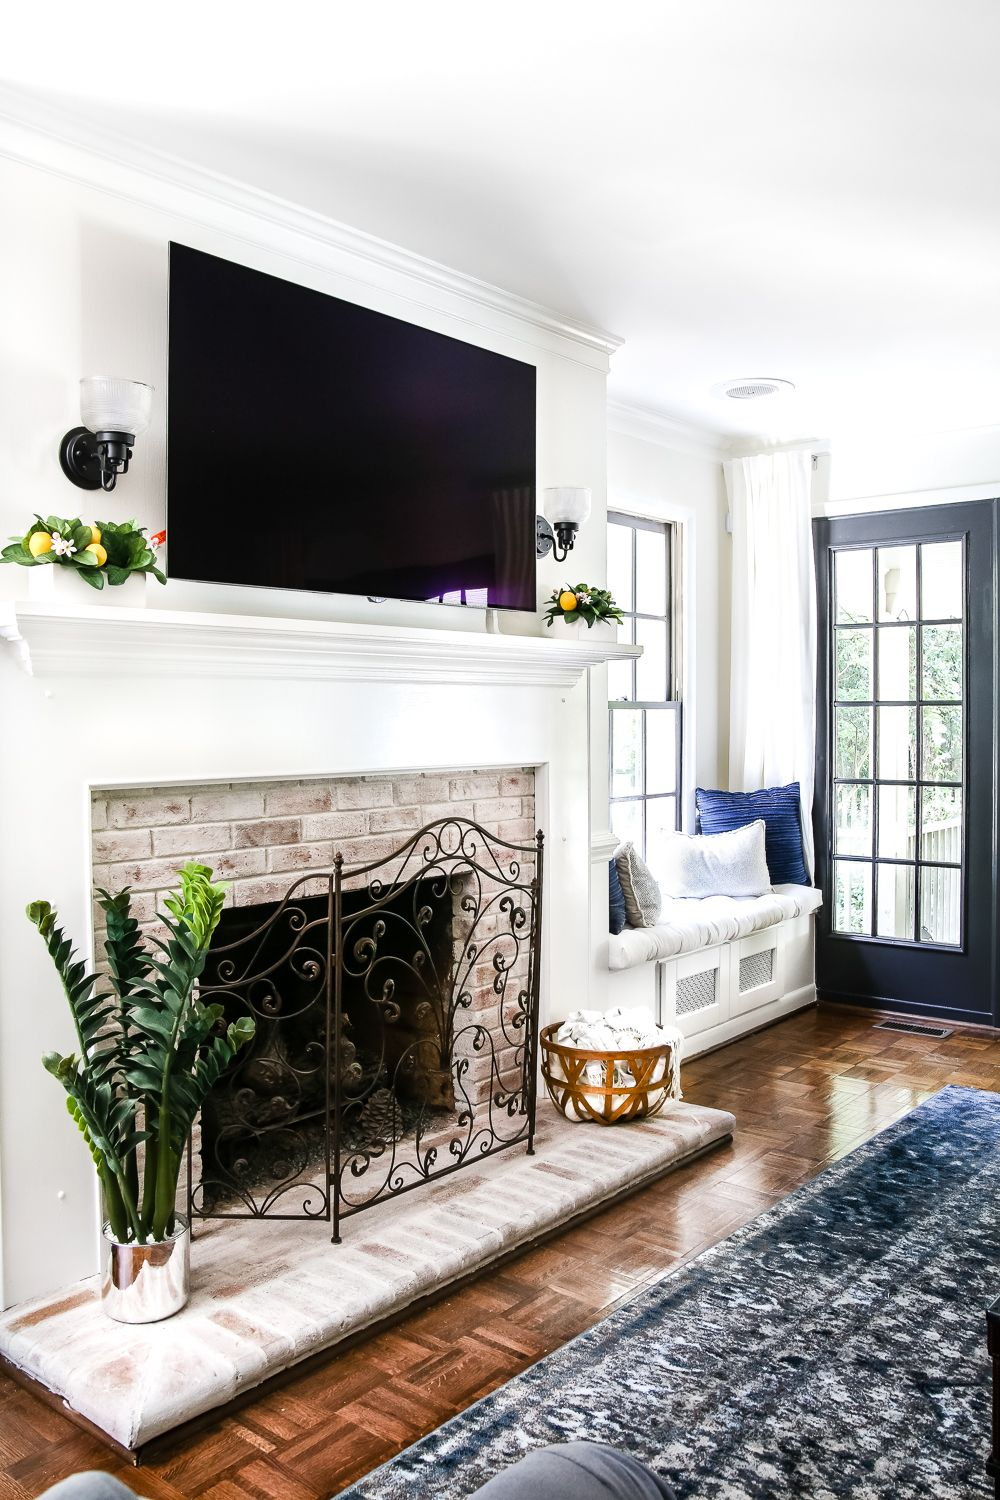 DIY Lime Washed Brick Fireplace - Bless'er House